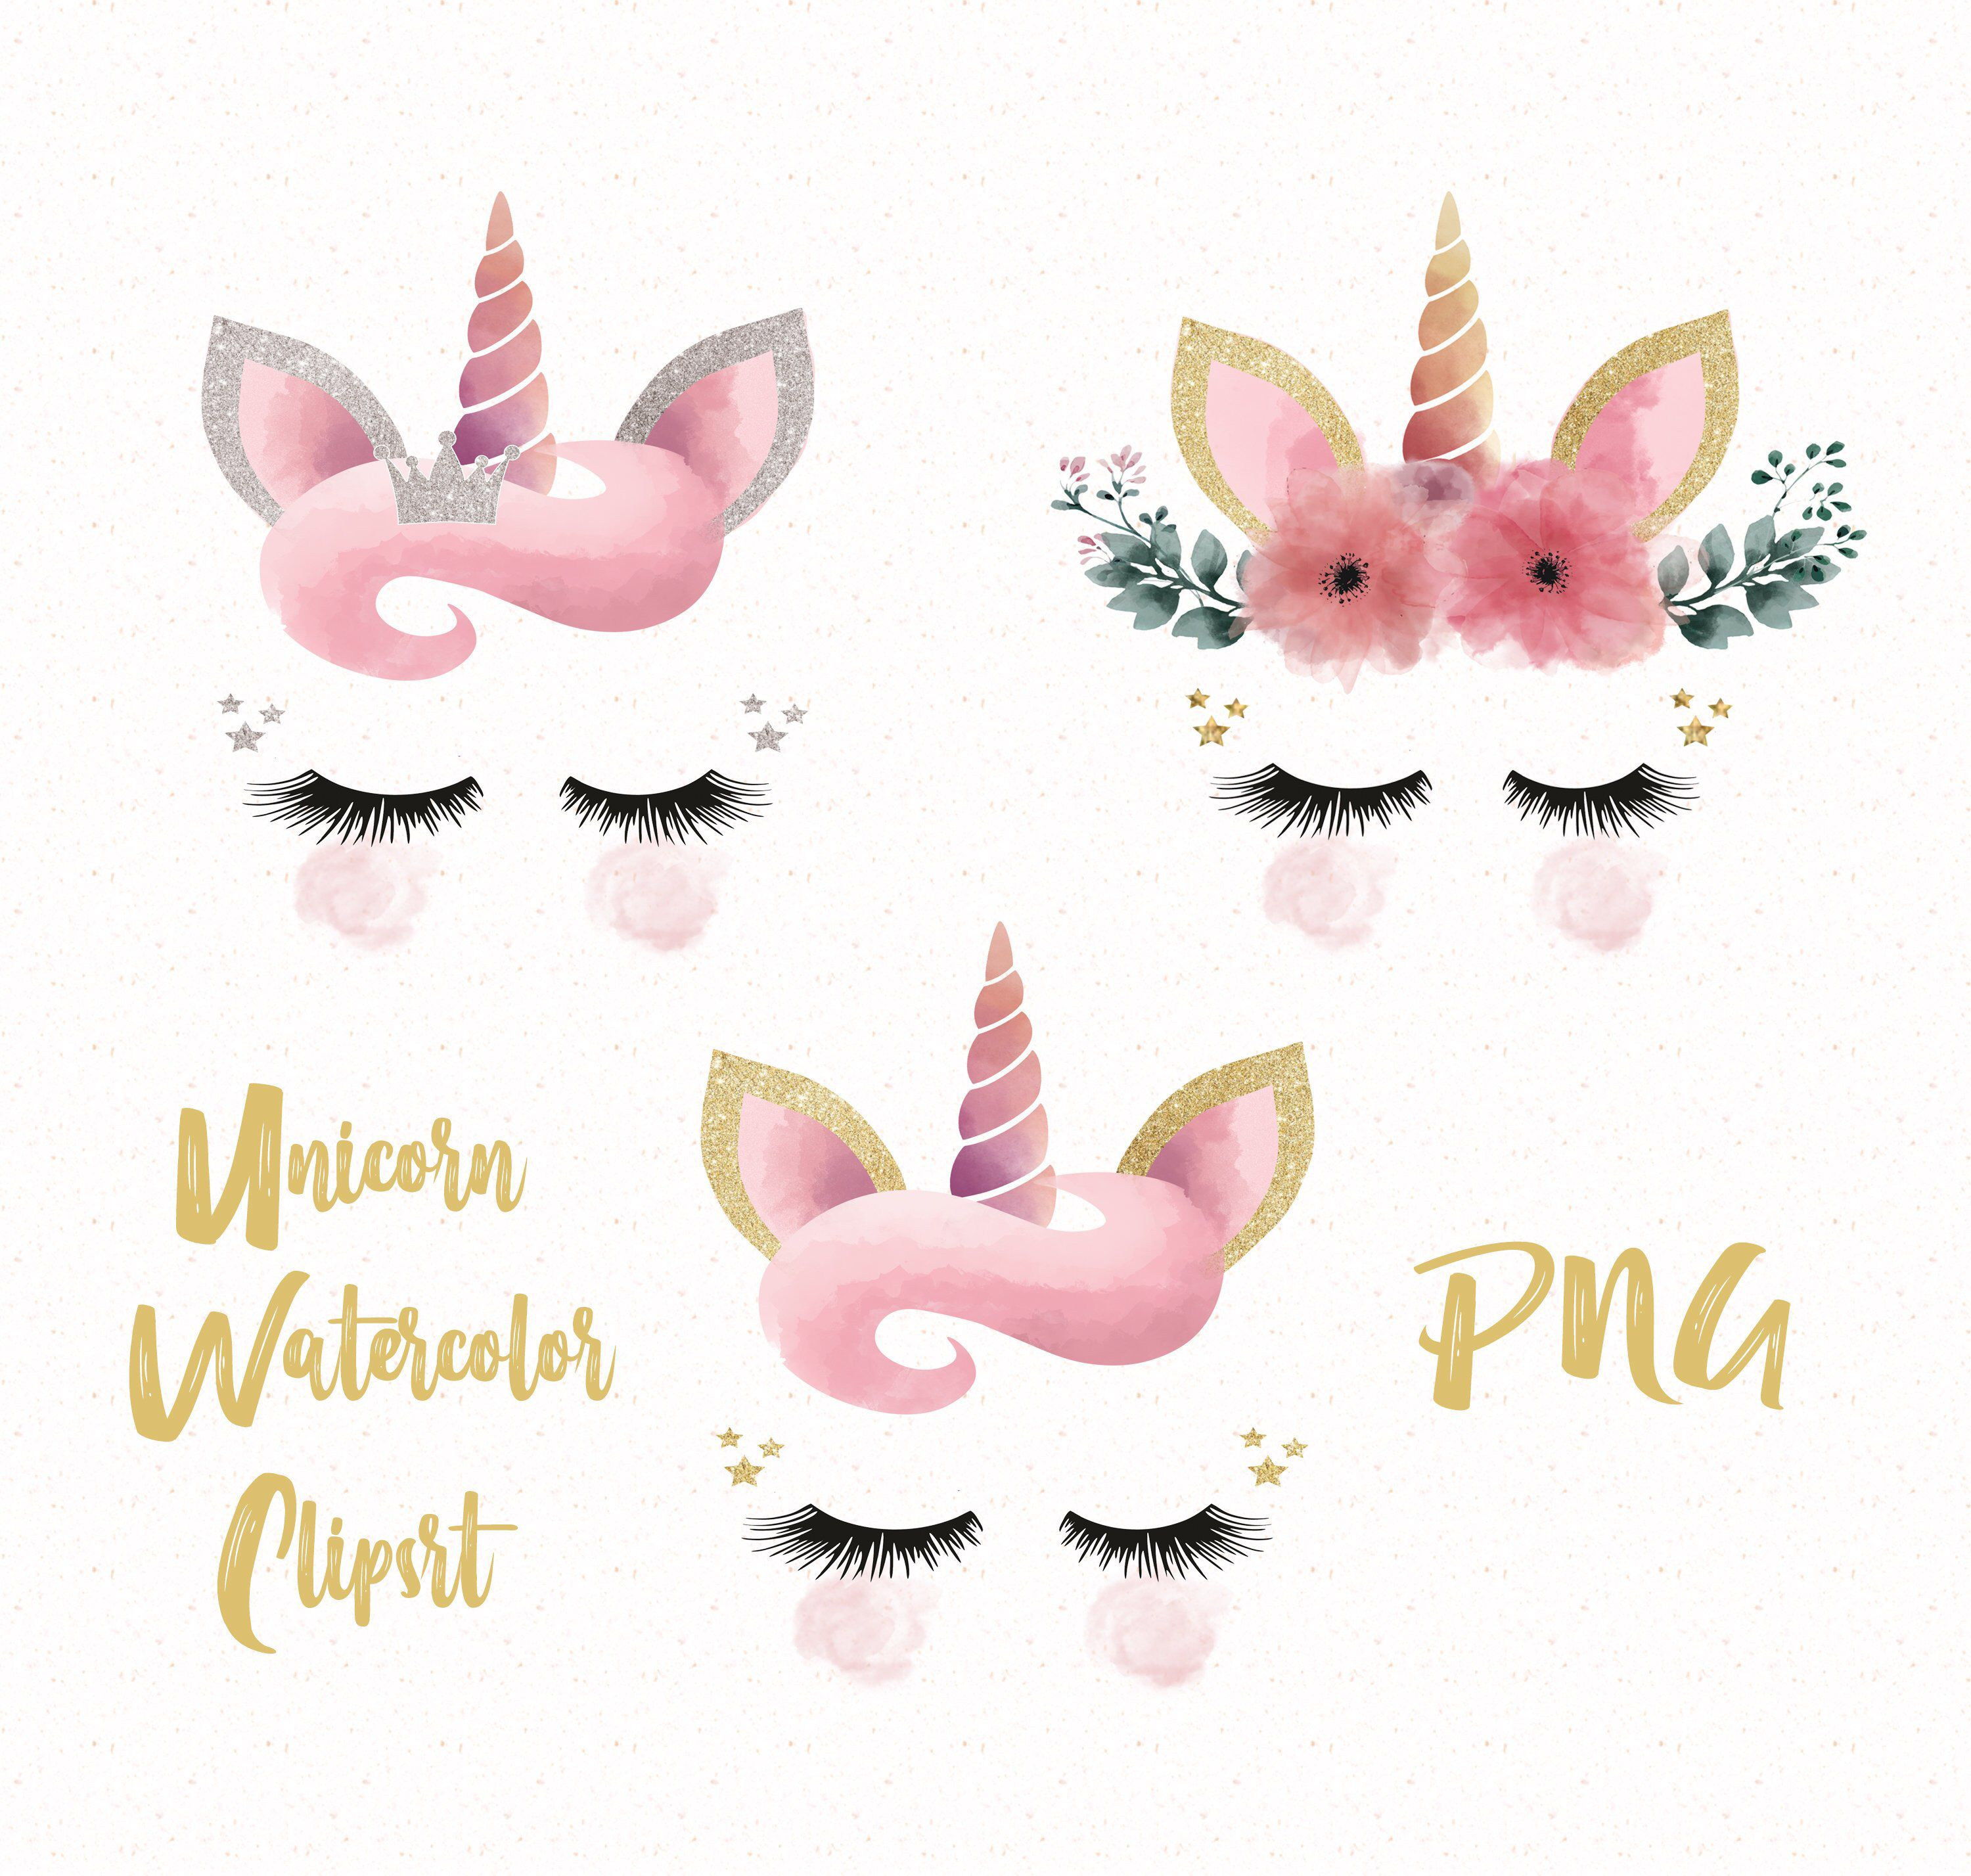 Unicorn Face Clipart Glitter And Watercolor Unicorn Floral Horn Clipart Unicorn Heads Png Unicorn Clipart Digital Files Png By Ahlamdesigner On Skrapbuking